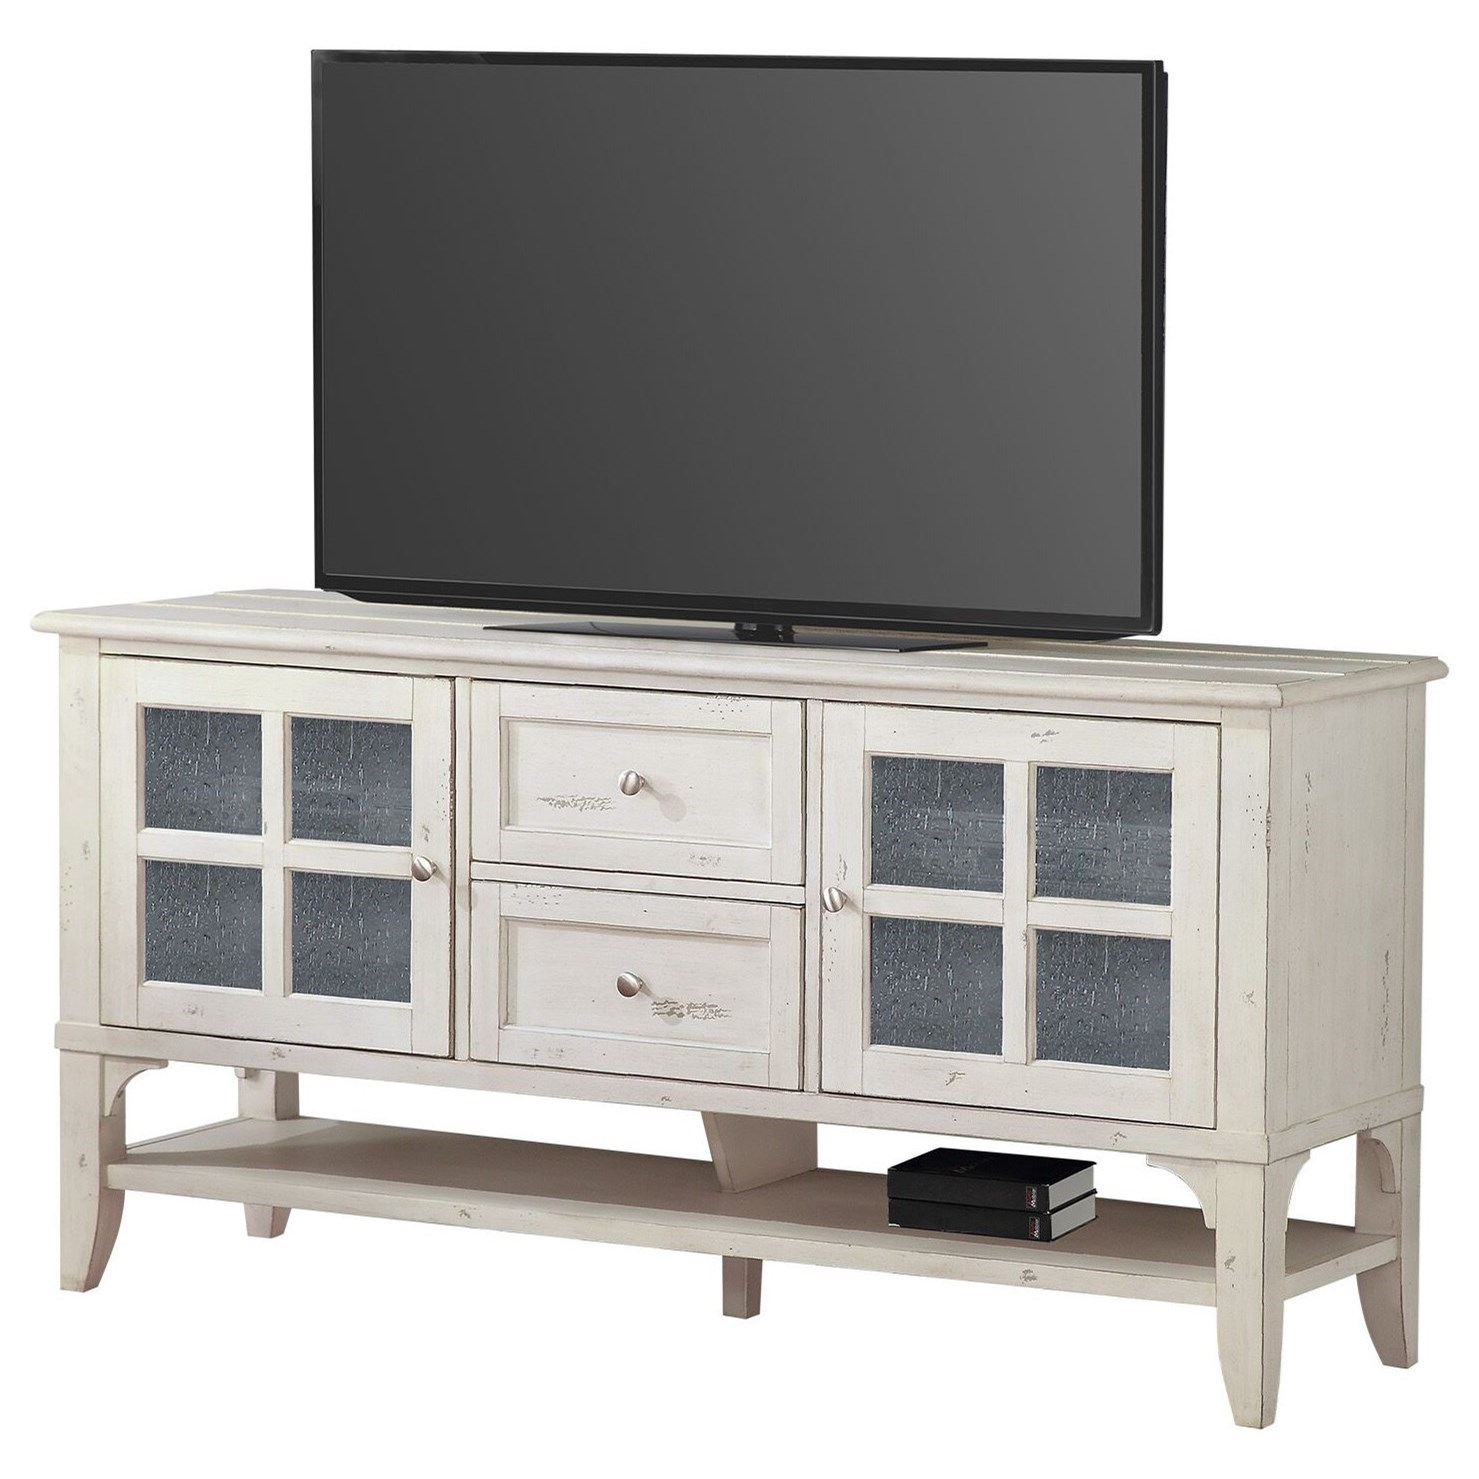 Lenox Lennox 63 in. TV Console by Parker House at Morris Home